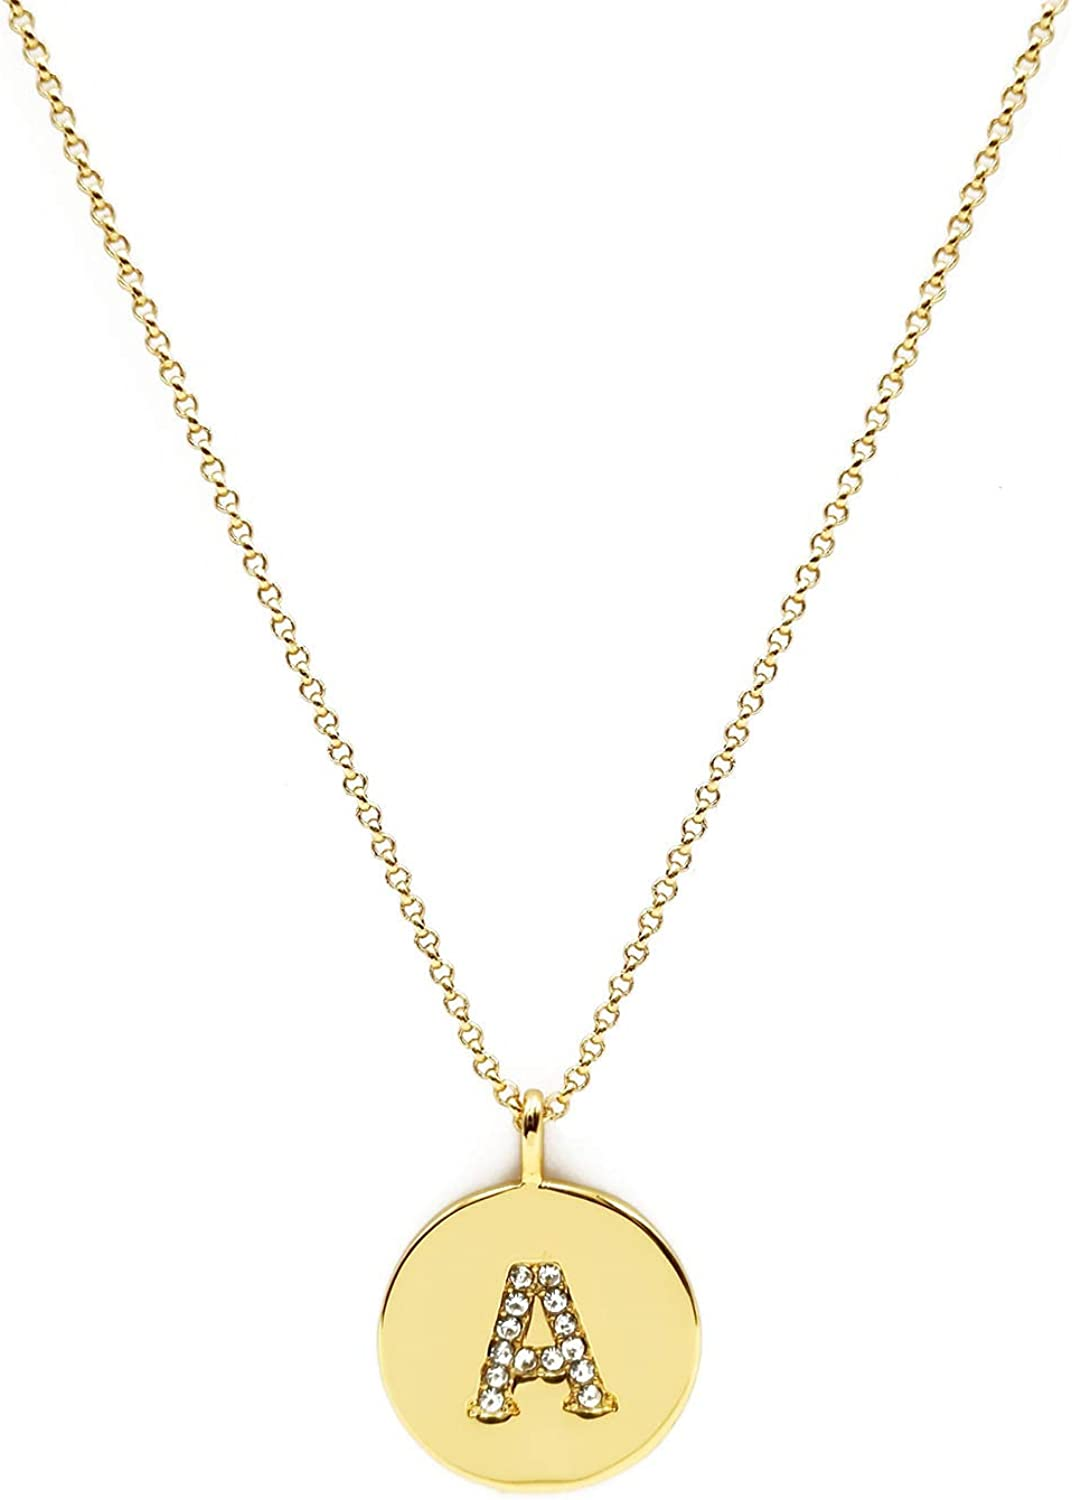 Urbanstrive 18K Adjustable Long Plated Initial Necklace Letter Gold Necklaces for Women, Ideal Gift for Women Girls Kids Friends, 26